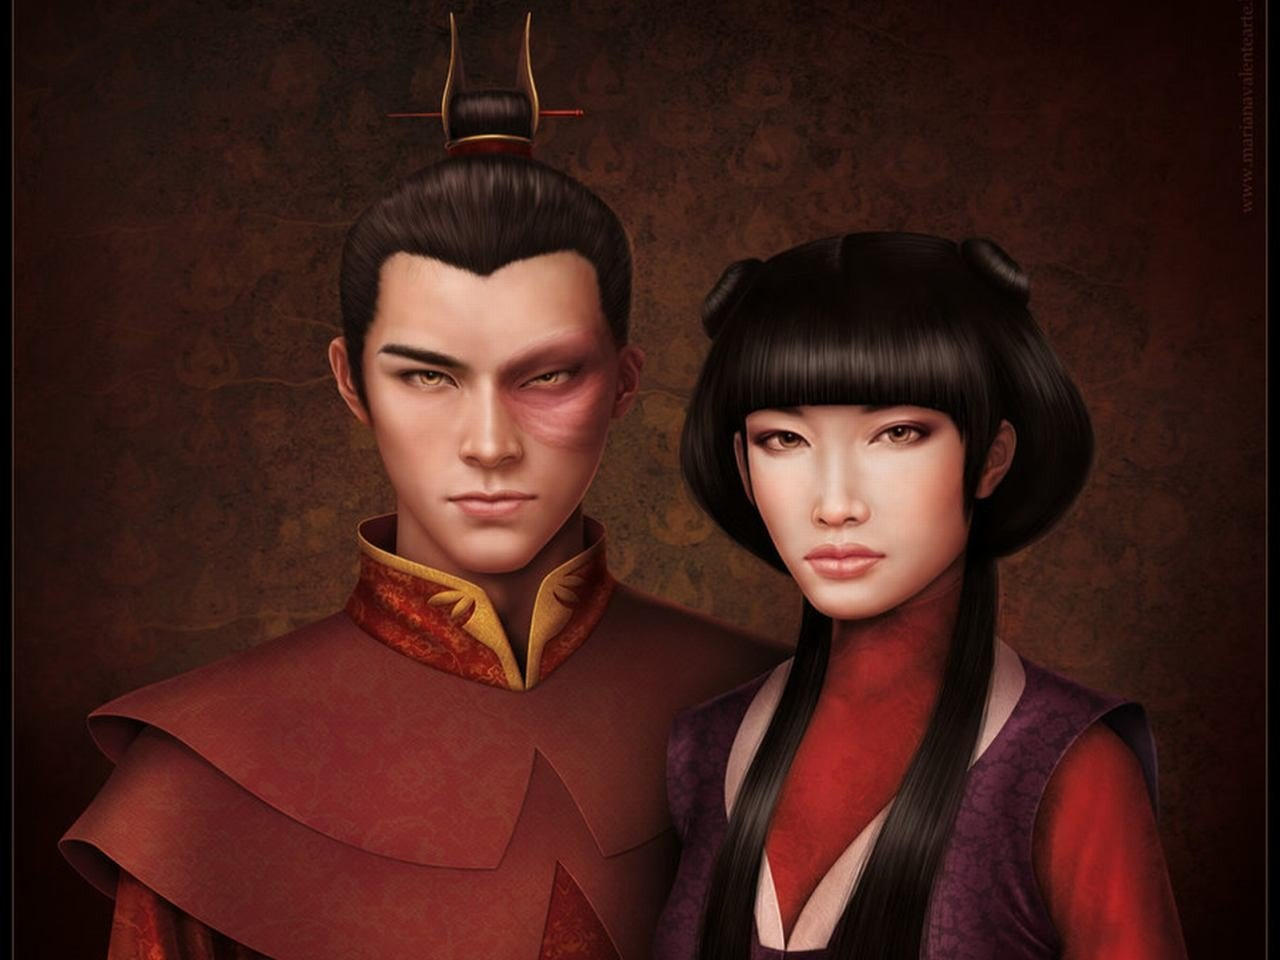 Prince Zuko Avatar The Last Airbender HD Wallpapers Desktop And Mobile Images Photos